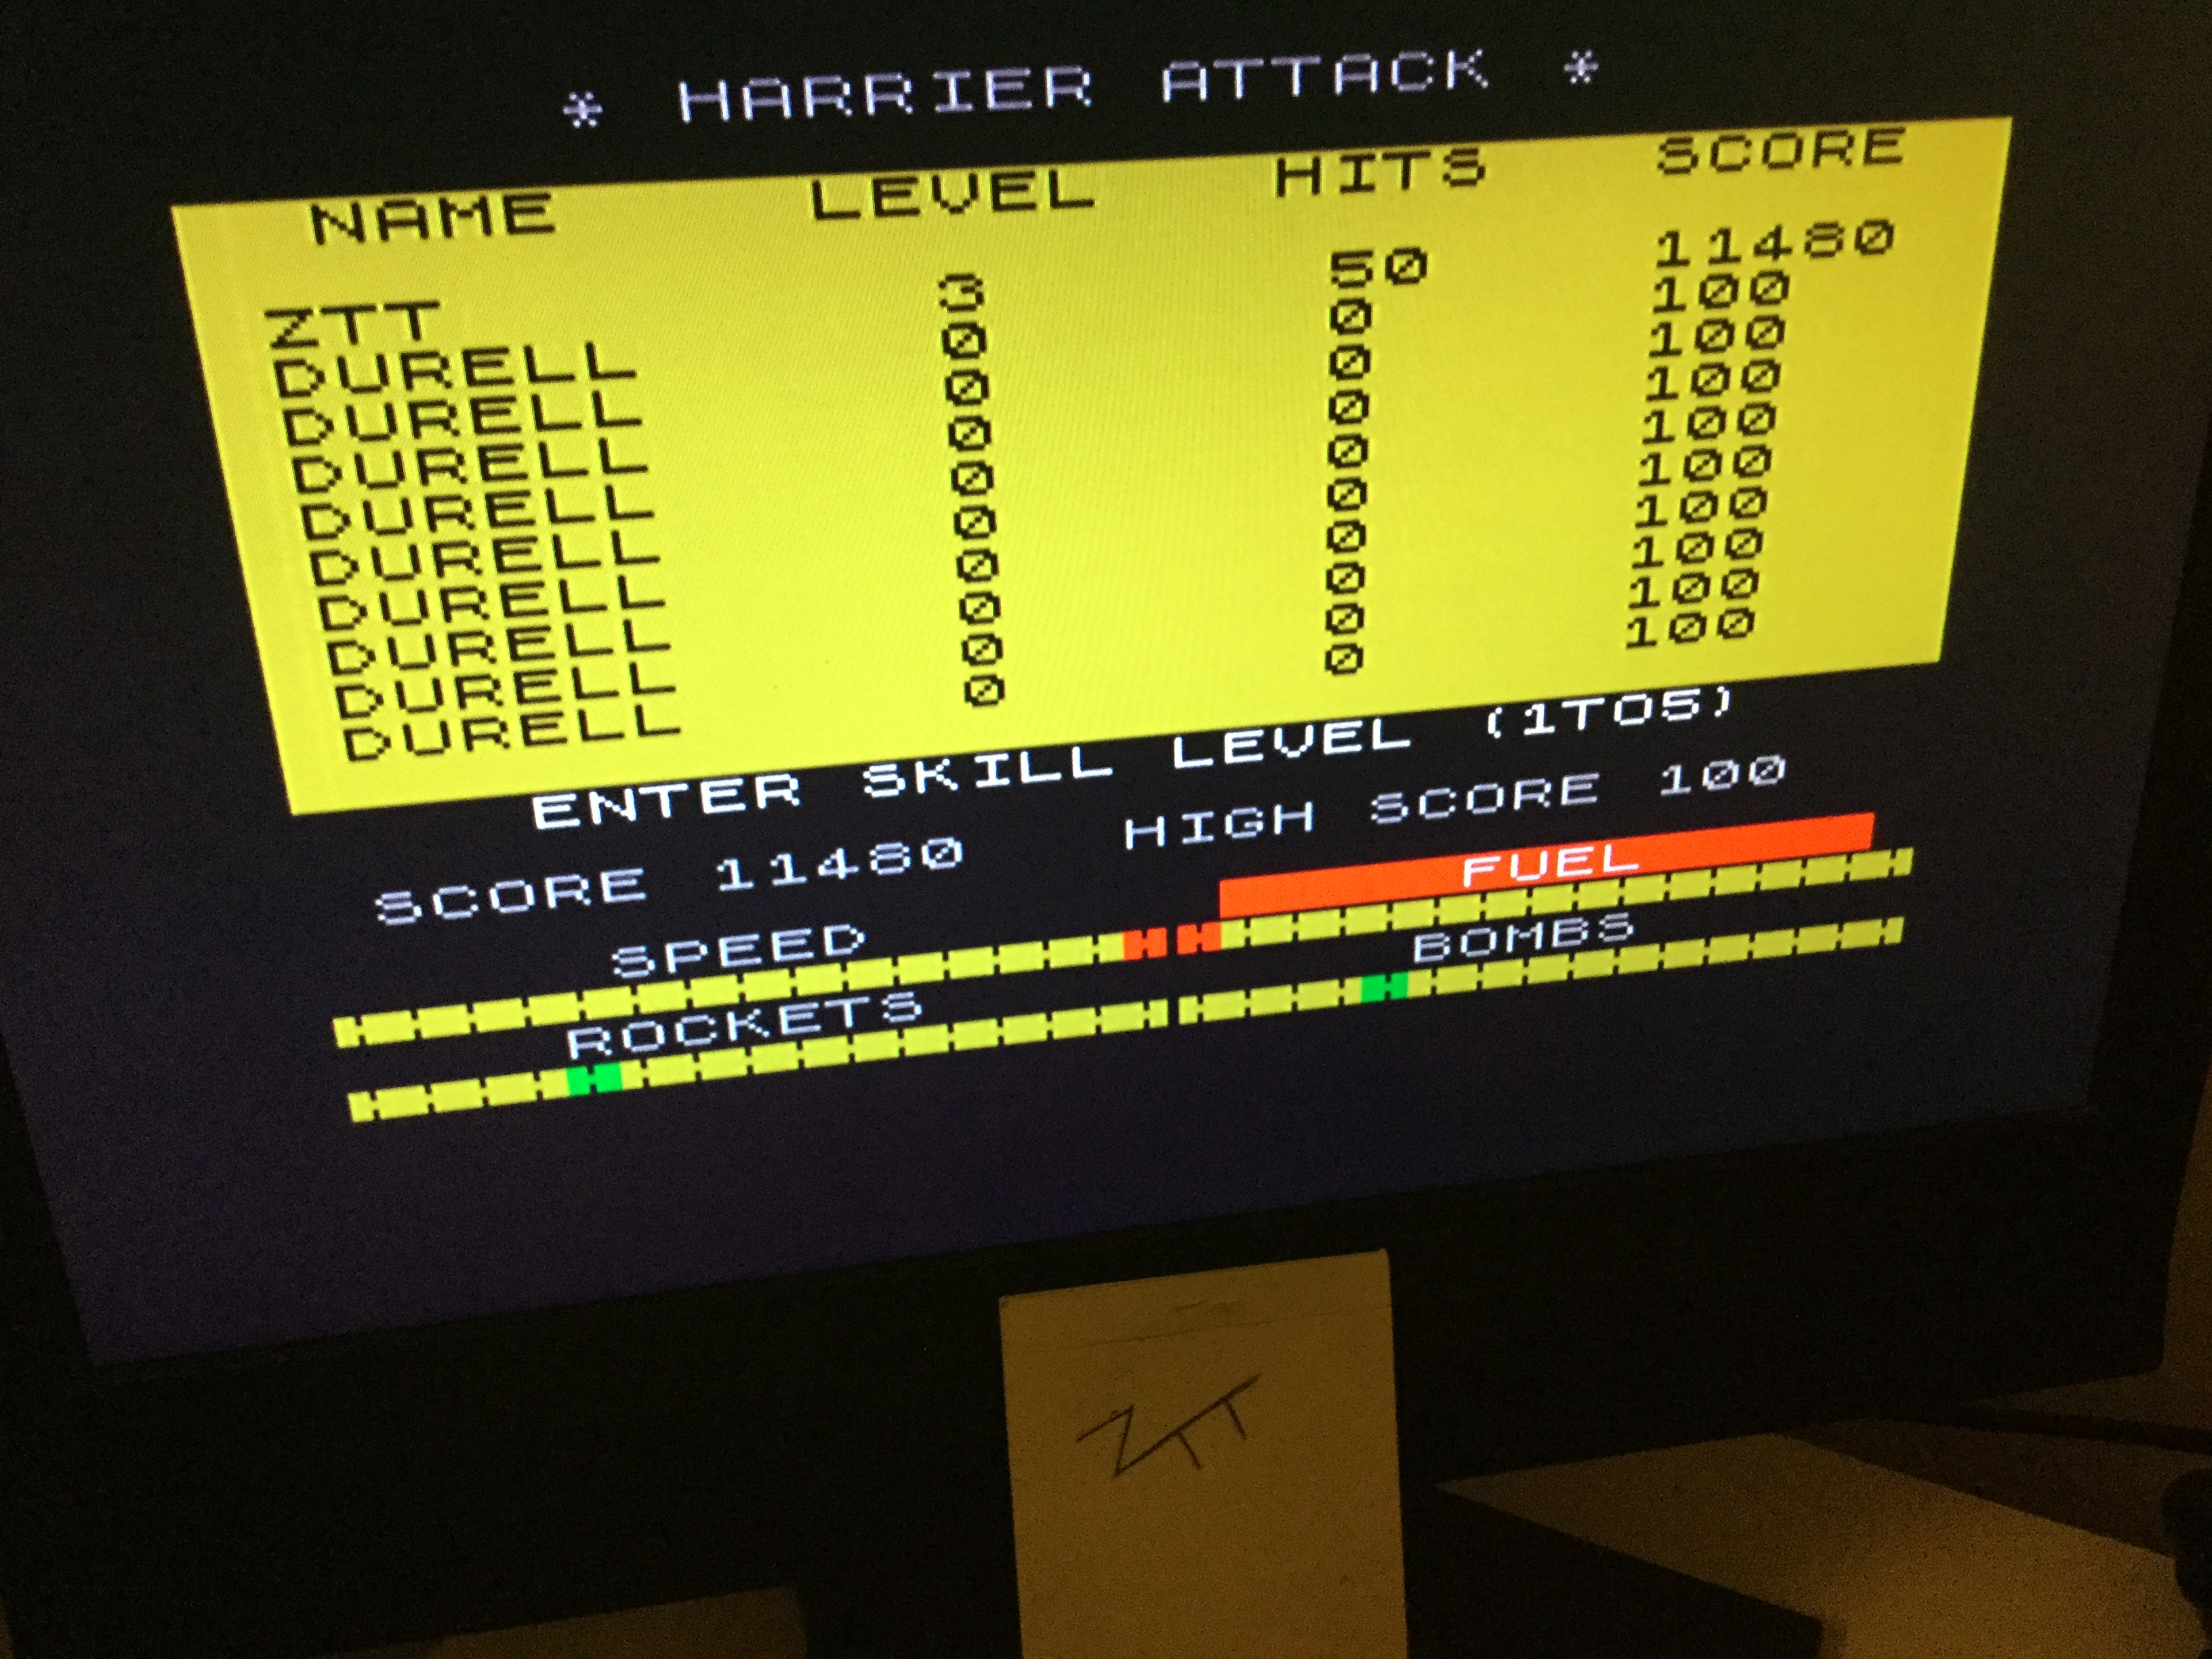 Frankie: Harrier Attack [Level 3] (ZX Spectrum) 11,480 points on 2020-06-12 06:29:57